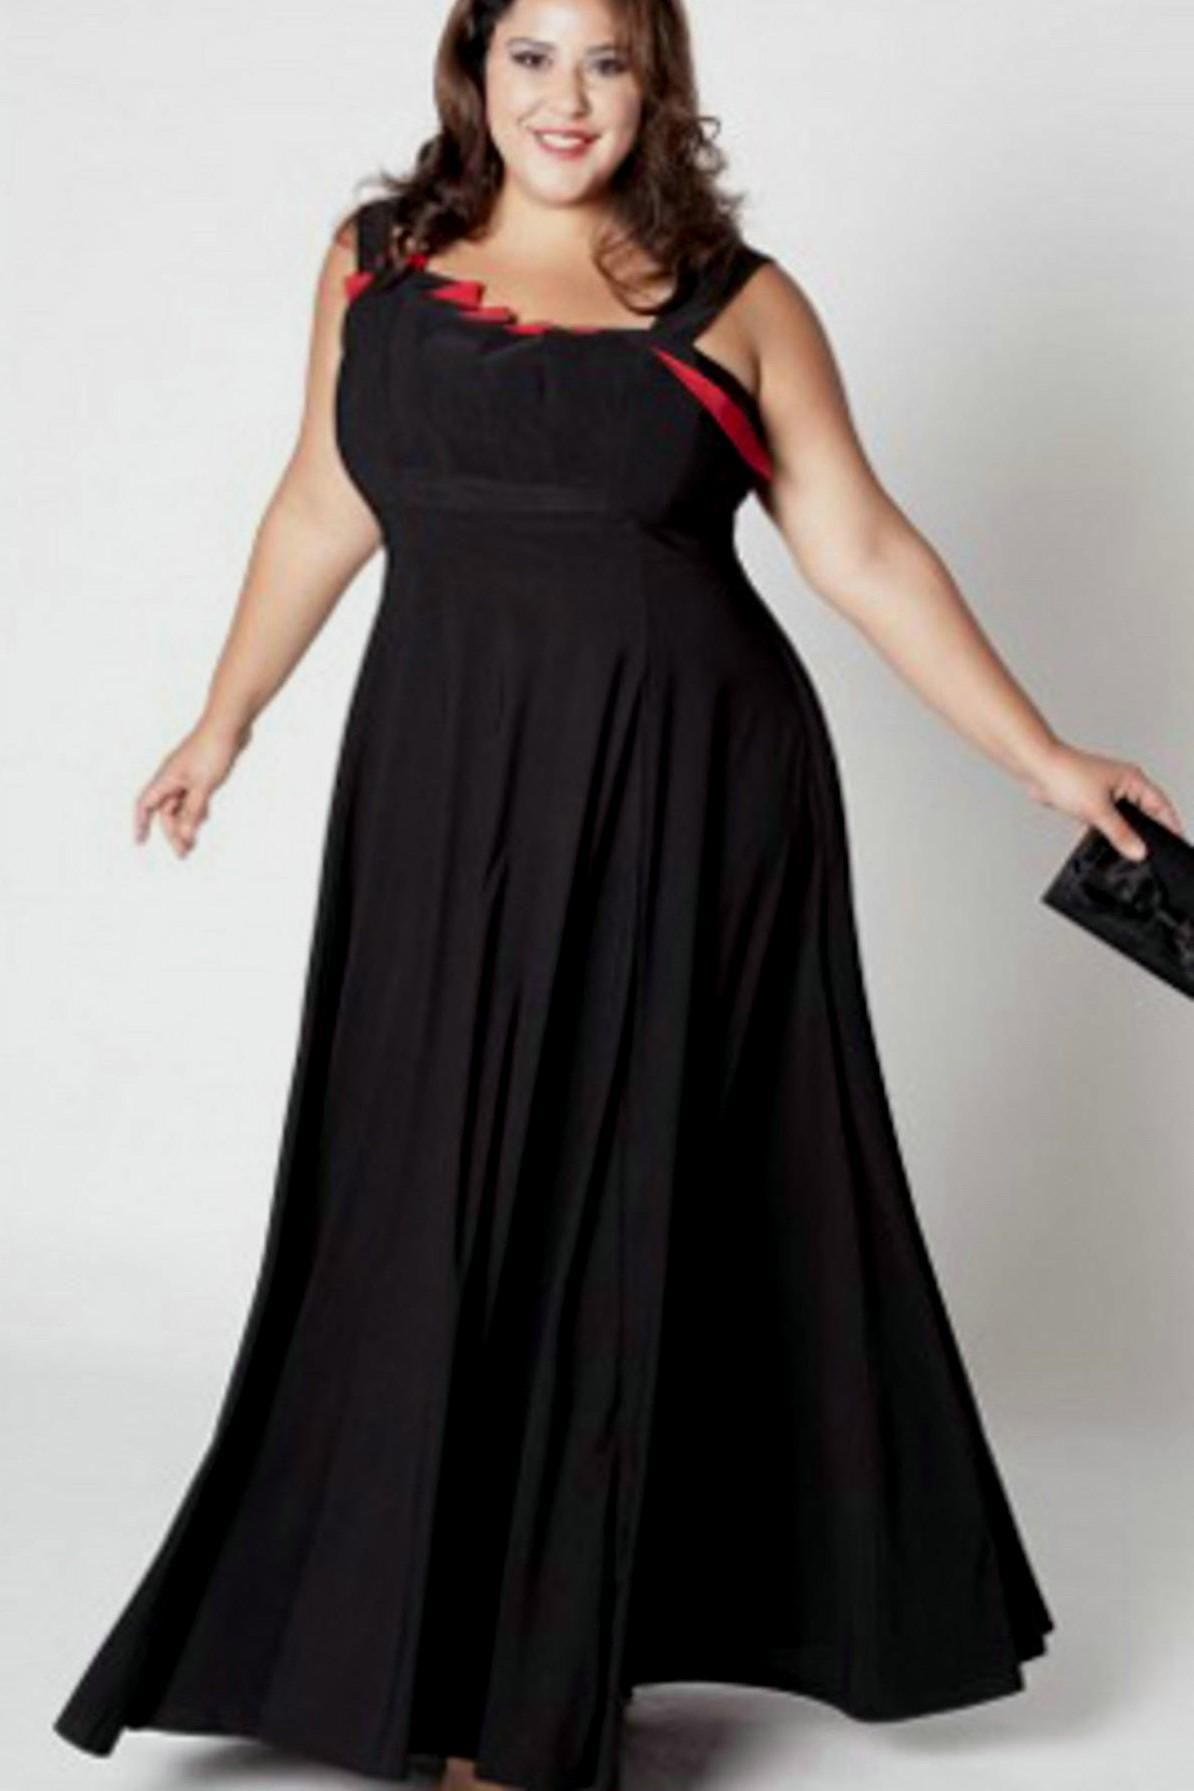 pink and black plus size dresses gallery - dresses design ideas